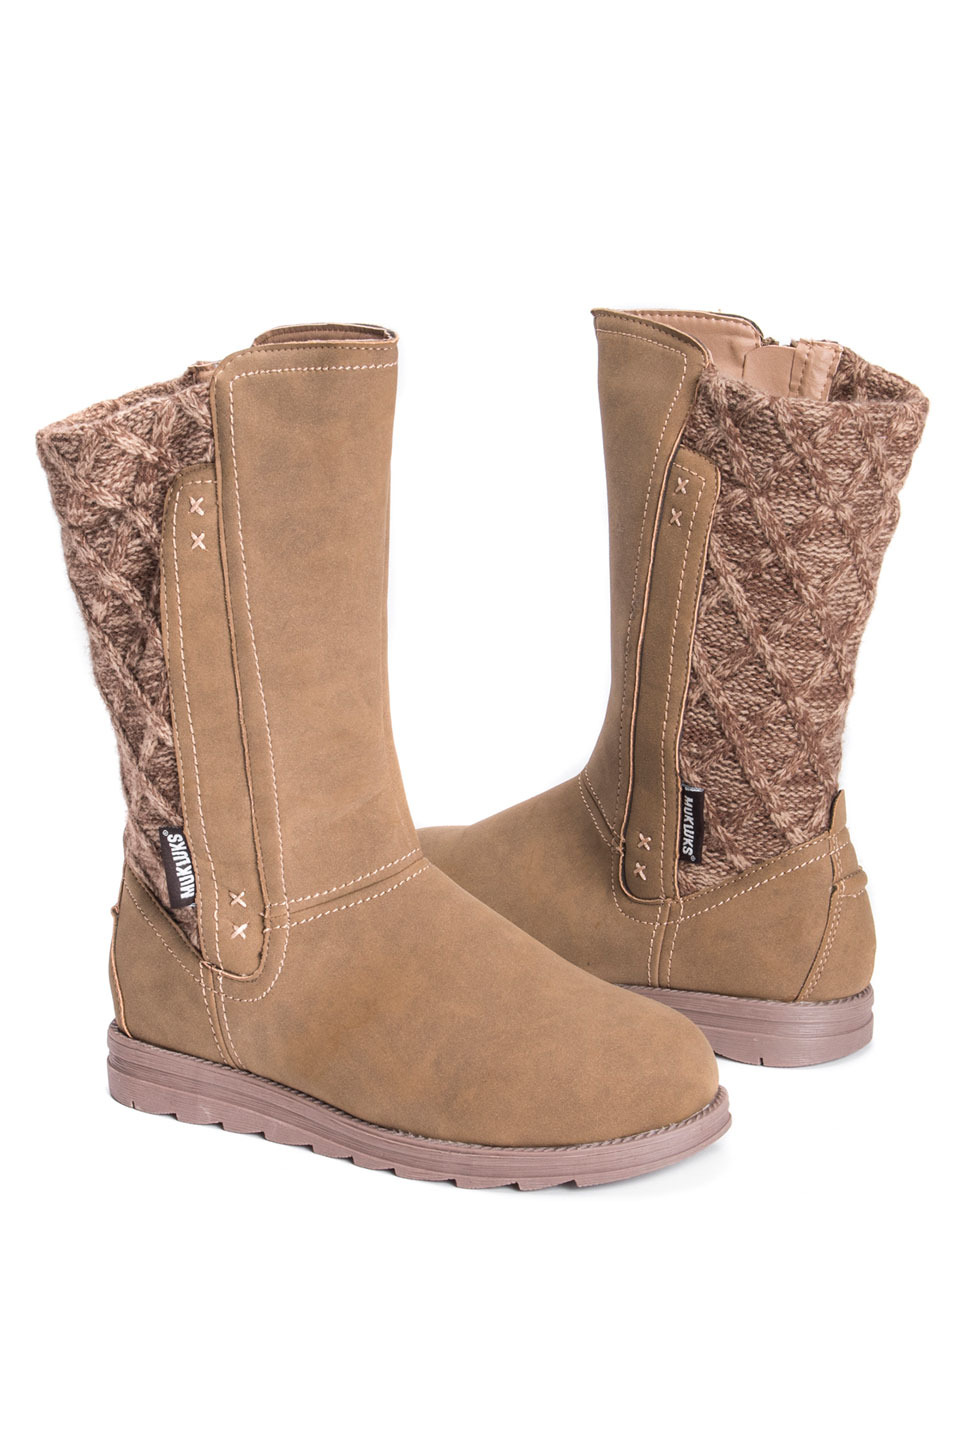 Women's Stacy Boots in Taupe